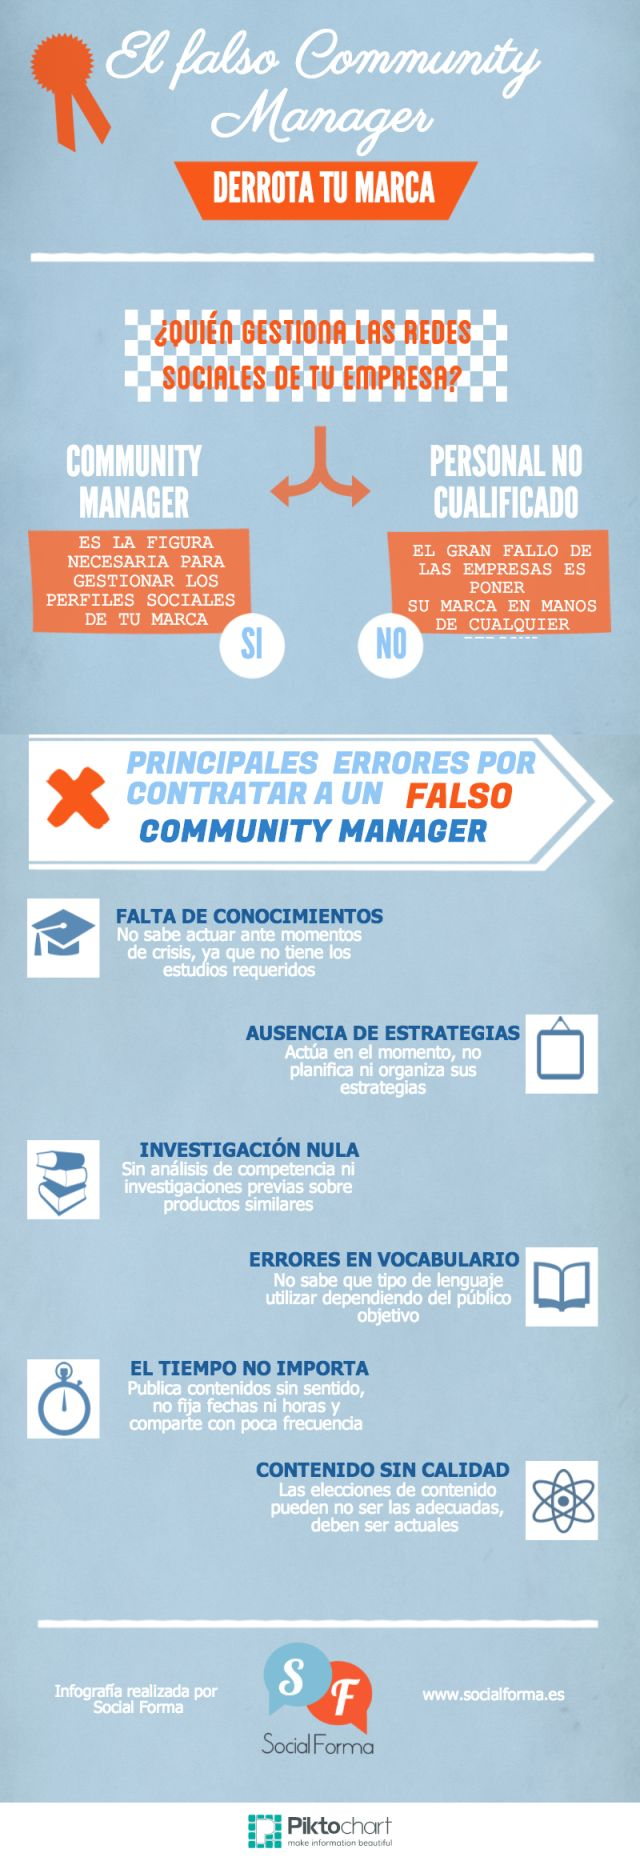 El falso #Community Manager